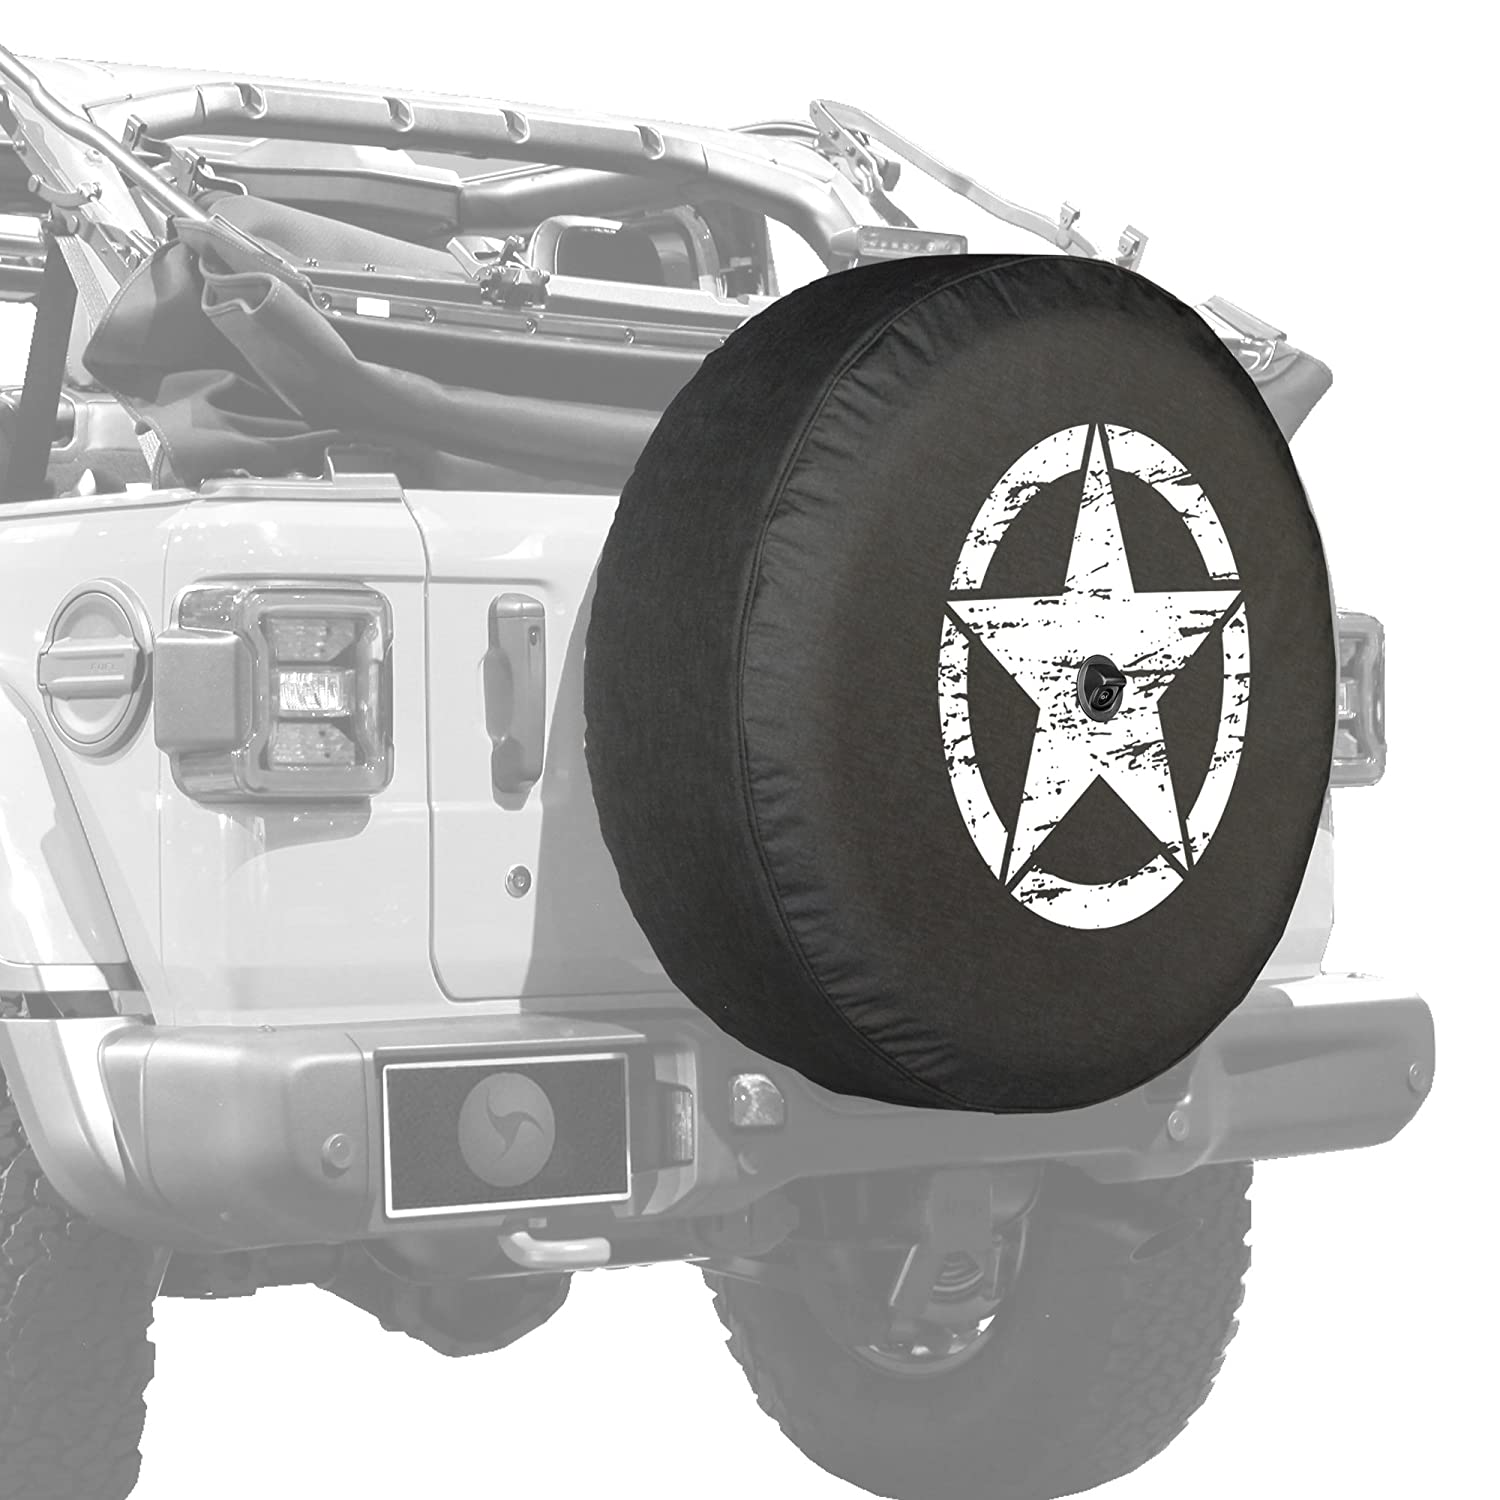 Jeep Wrangler Rubicon JL - 33' Soft JL Tire Cover - Distressed Star - Green Print - Made in The USA Boomerang Enterprises Inc.